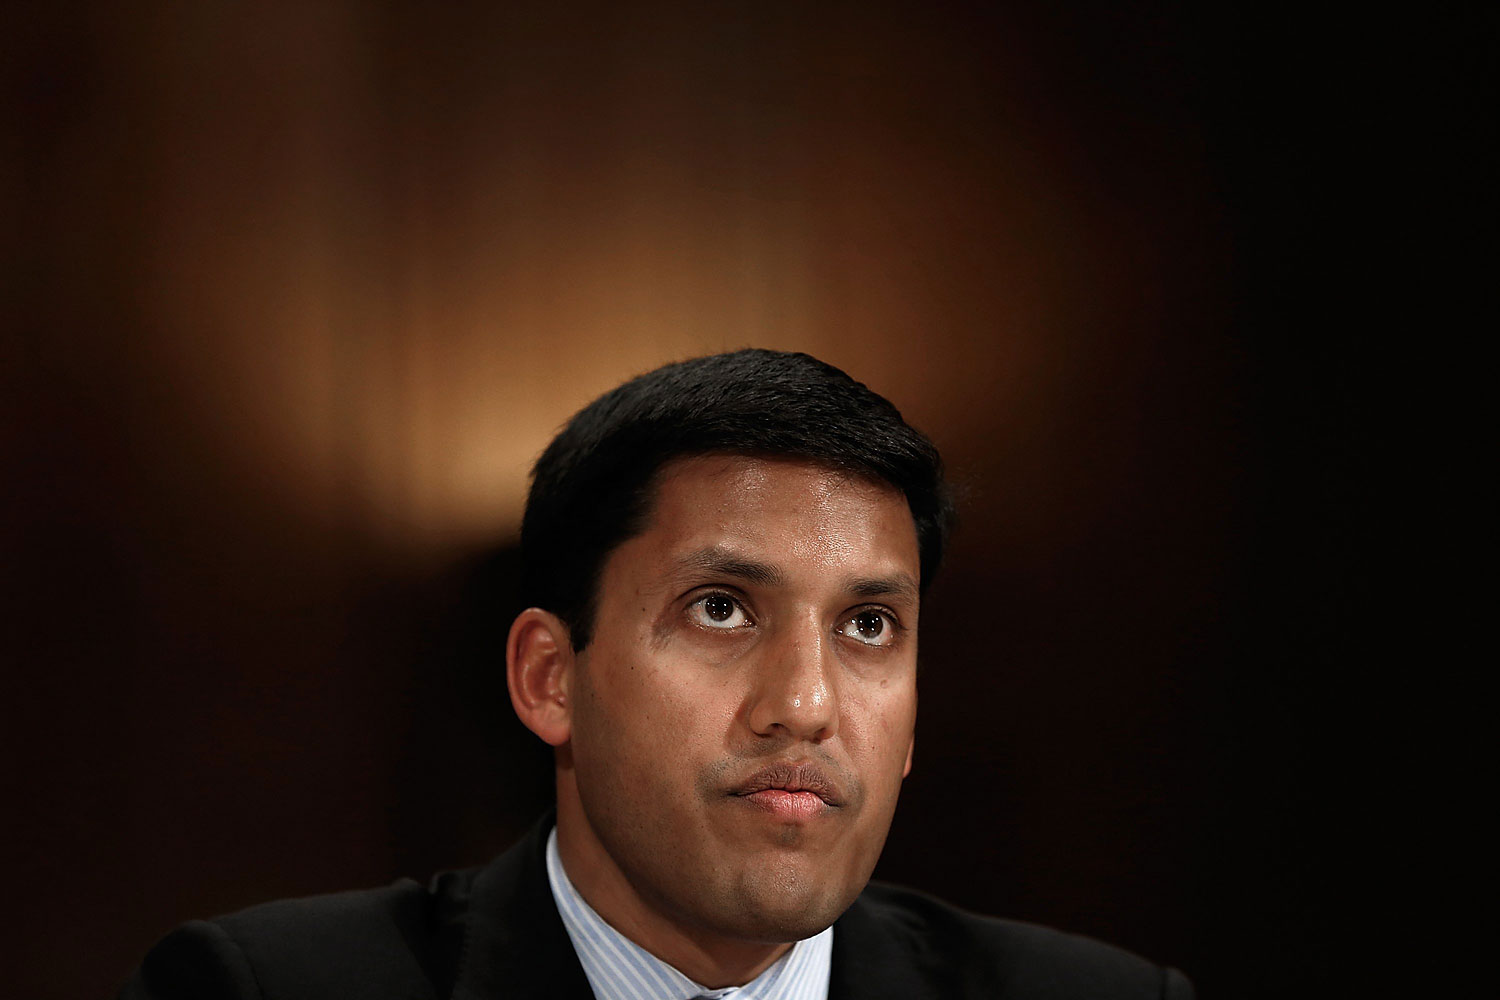 Rajiv Shah, administrator of the U.S. Agency for International Development testifies before a subcommittee of the Senate Appropriations Committee April 8, 2014 in Washington, DC.